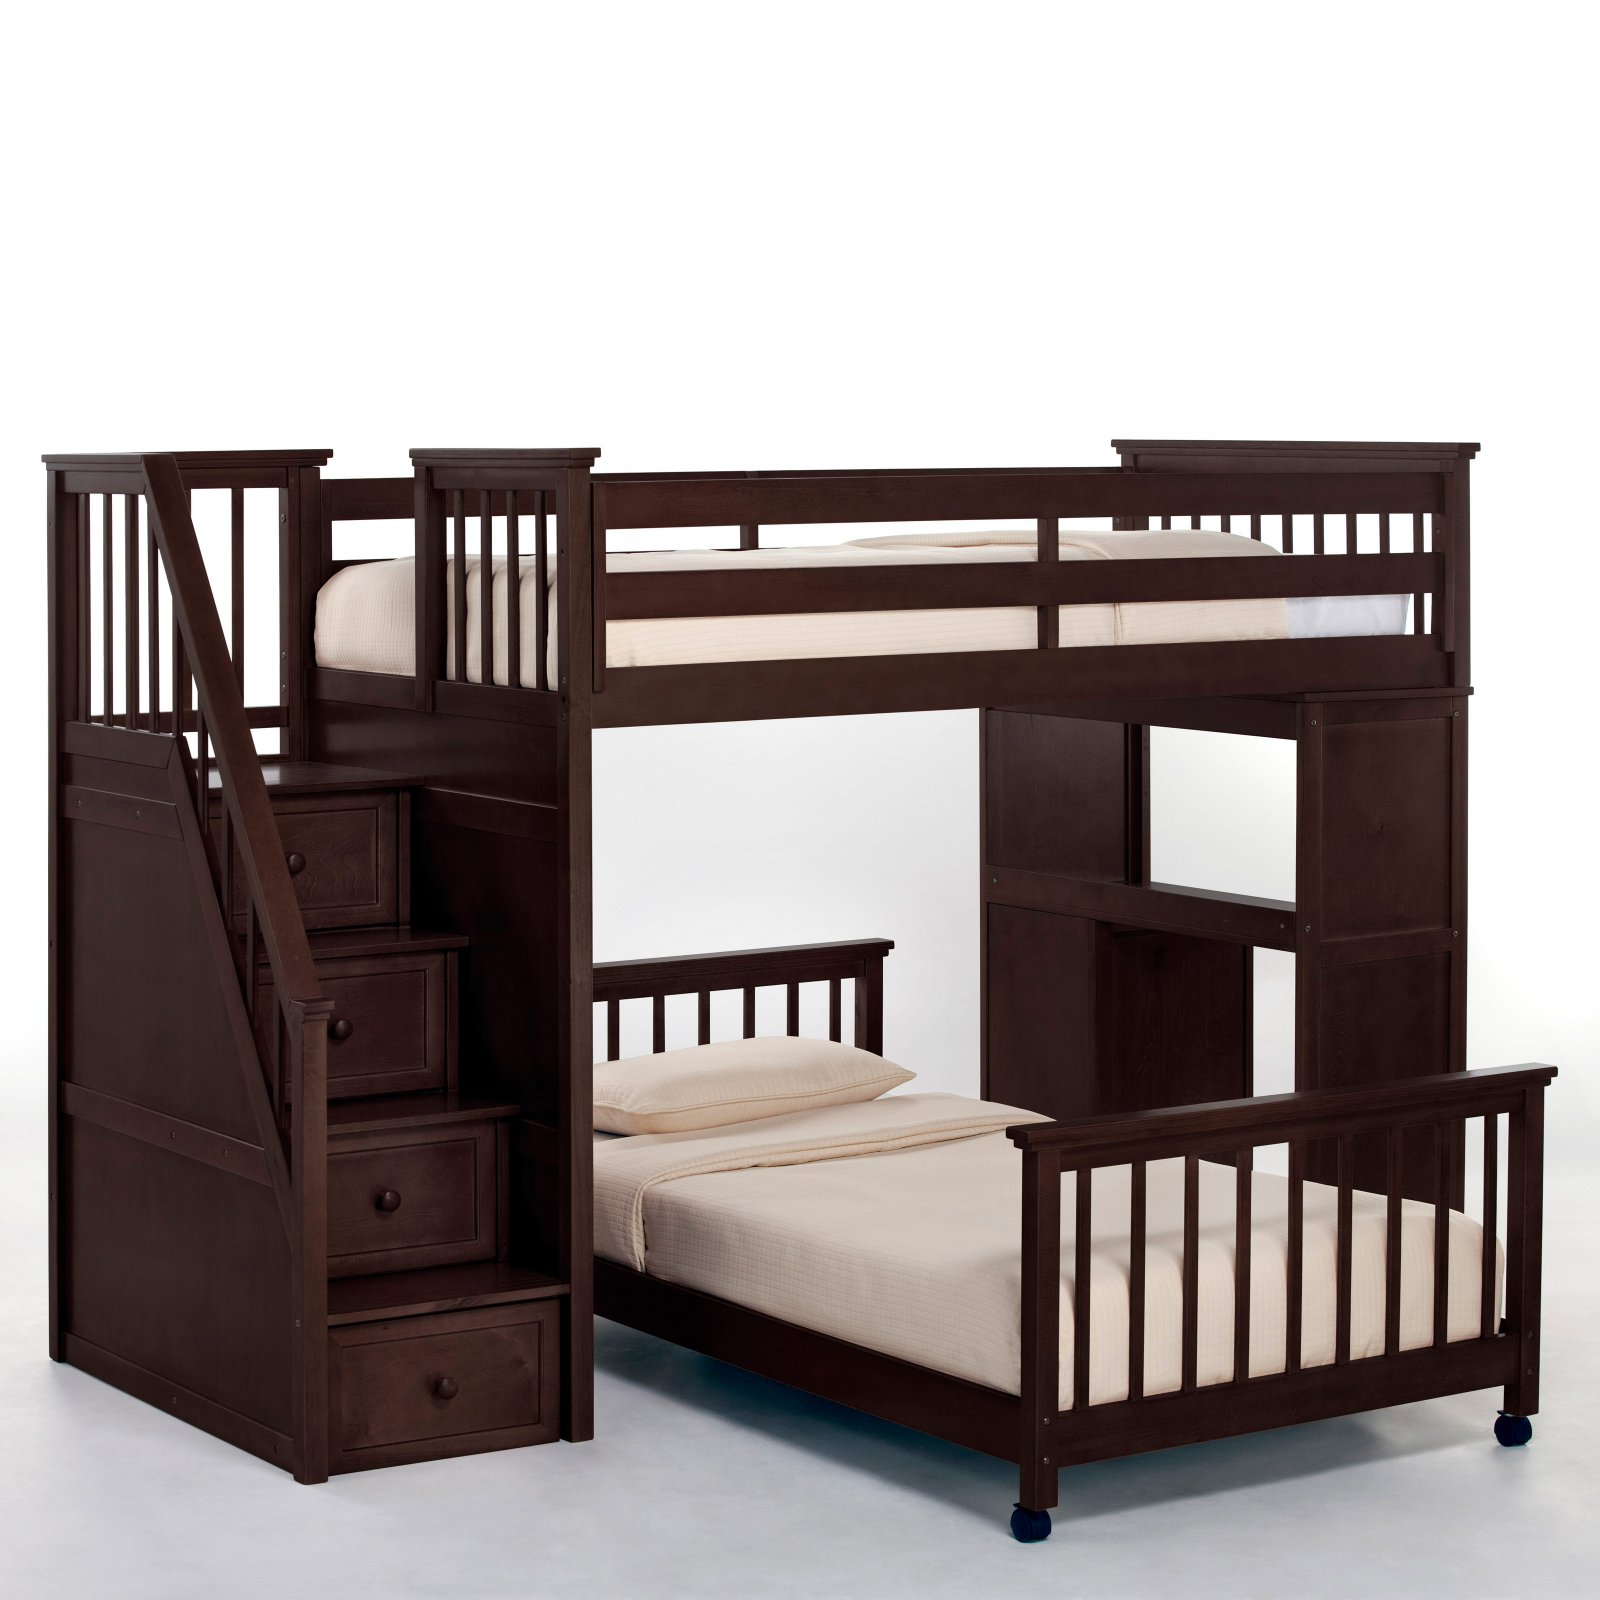 Hillsdale School House Twin Stair Loft With Desk End & Full Lower Bed, Chocolate